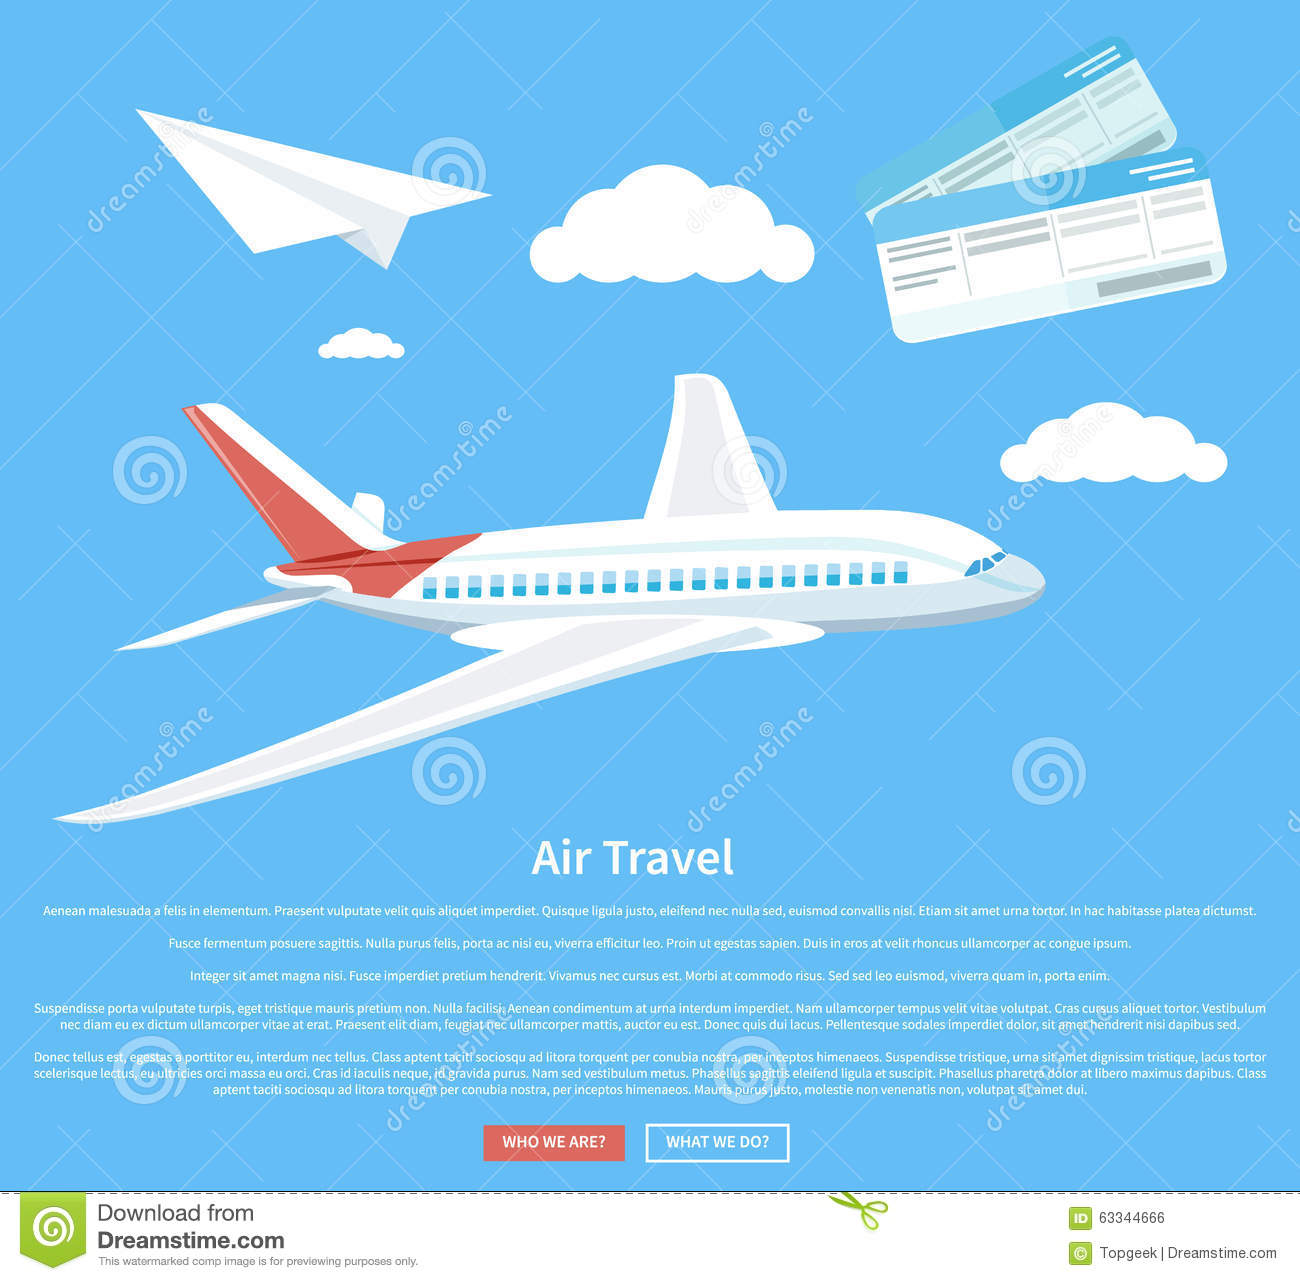 How to Start a Travel Agent Business